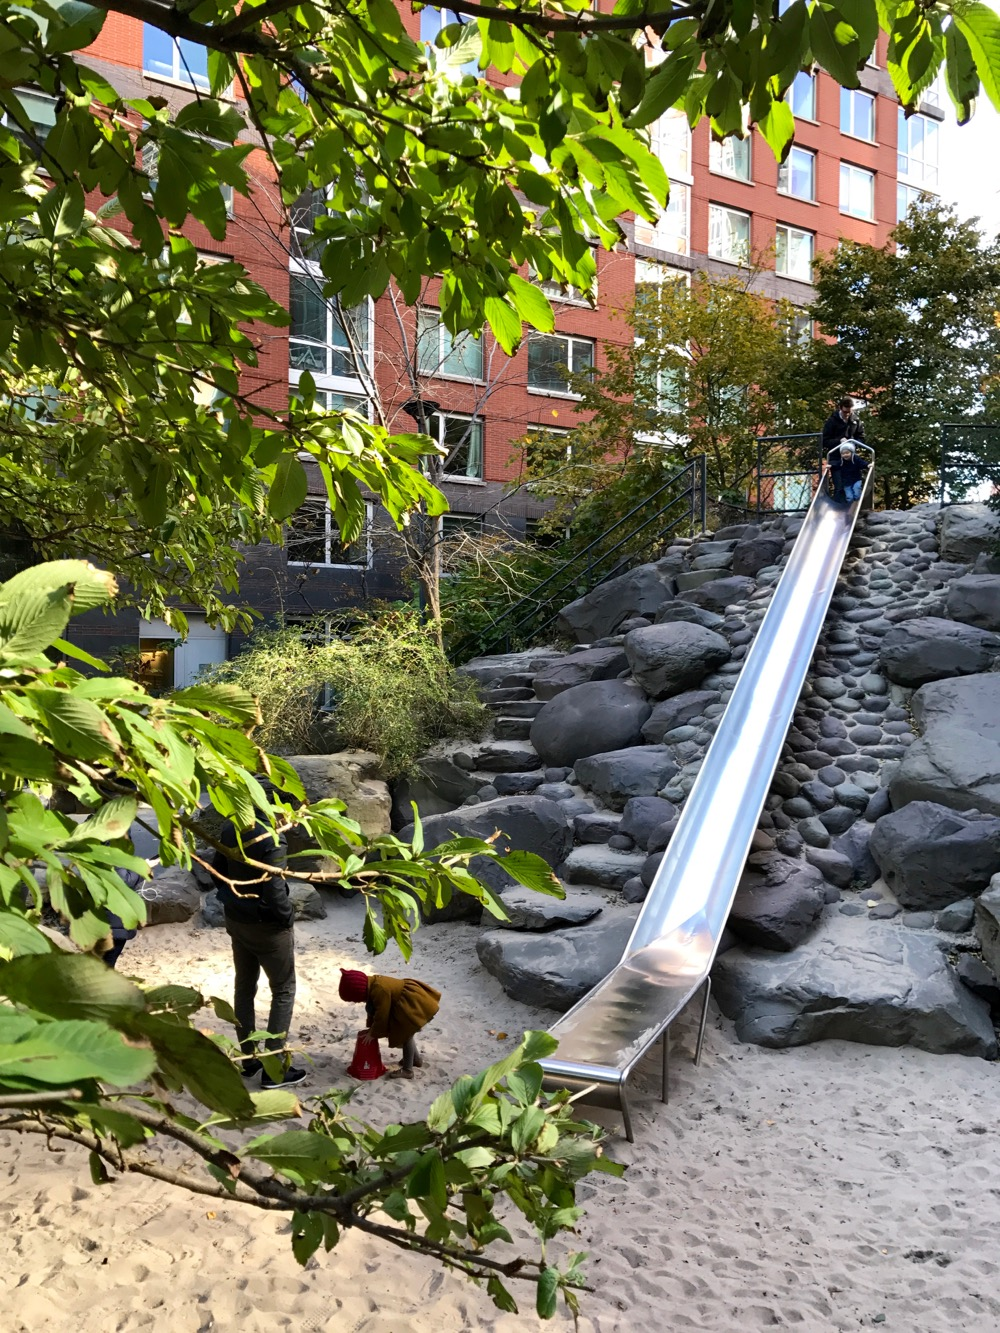 Teardrop Park slide and sand pit